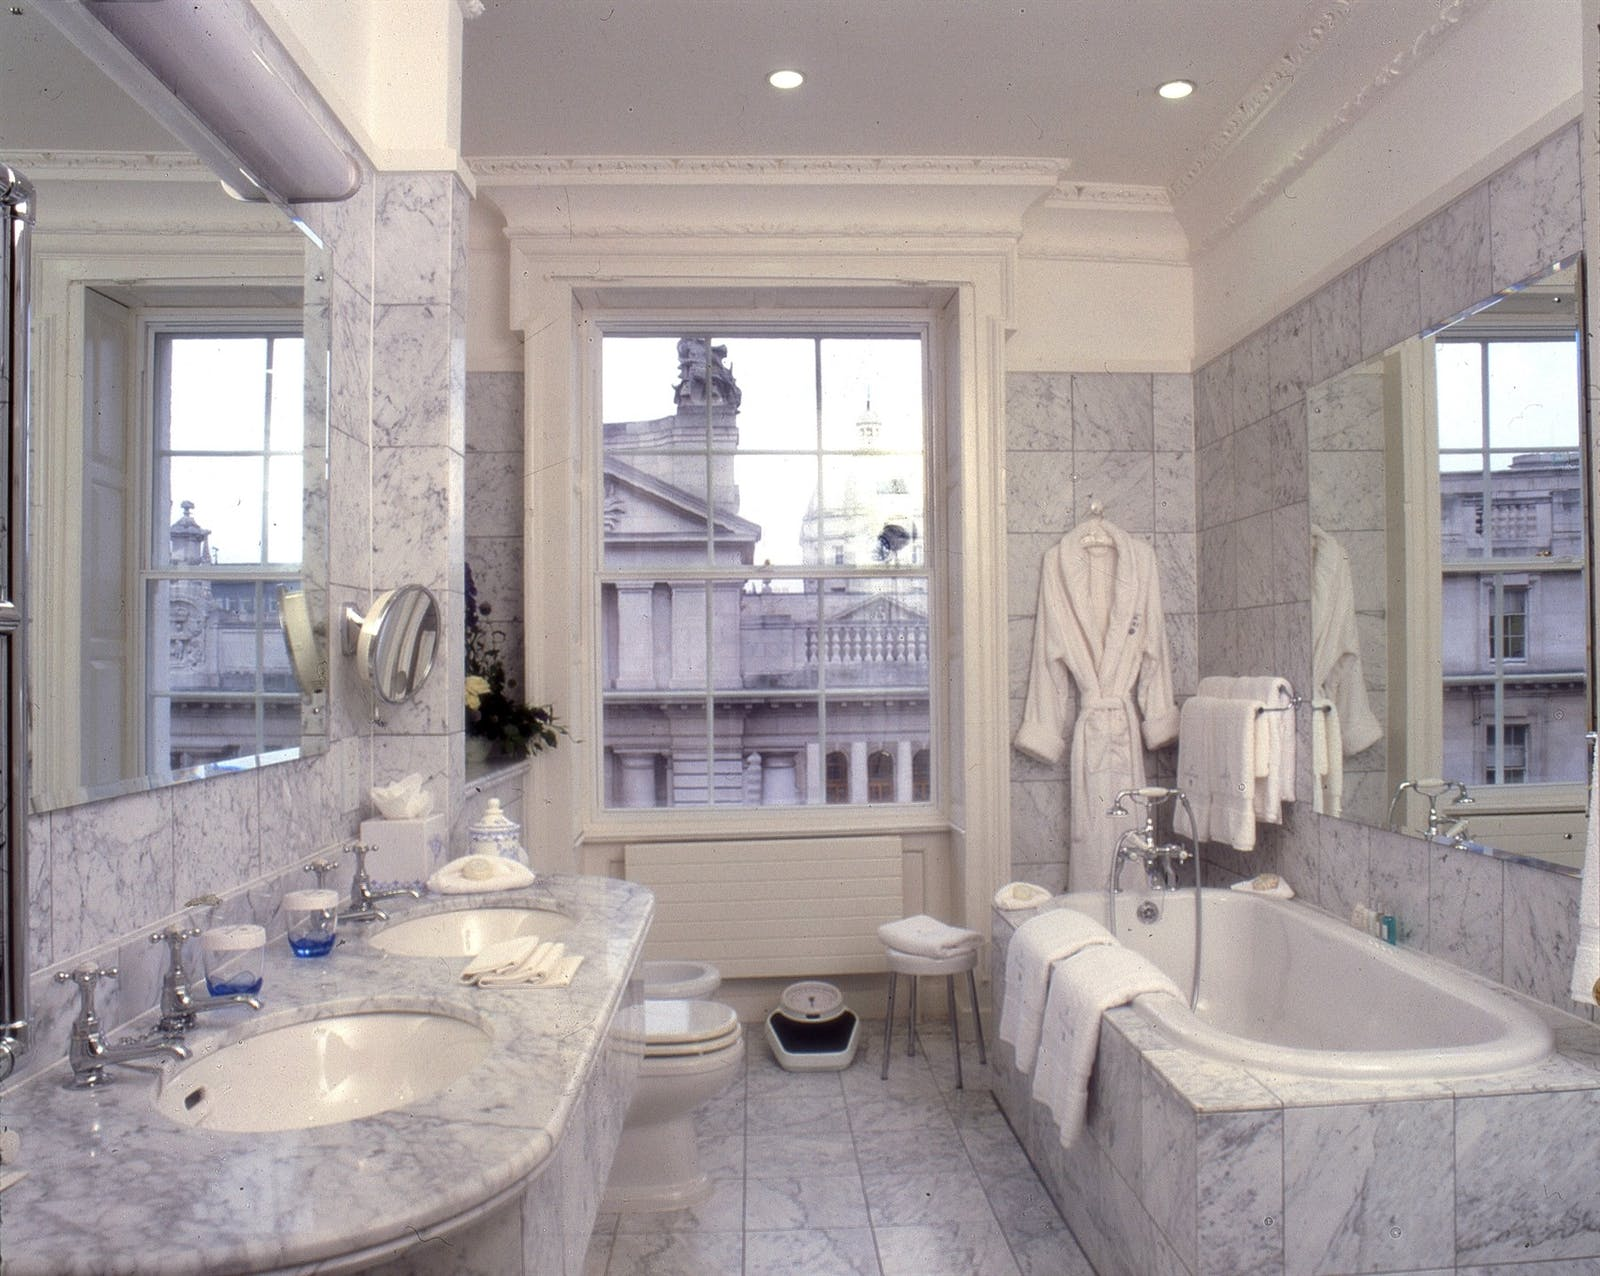 Bathroom of The Merrion